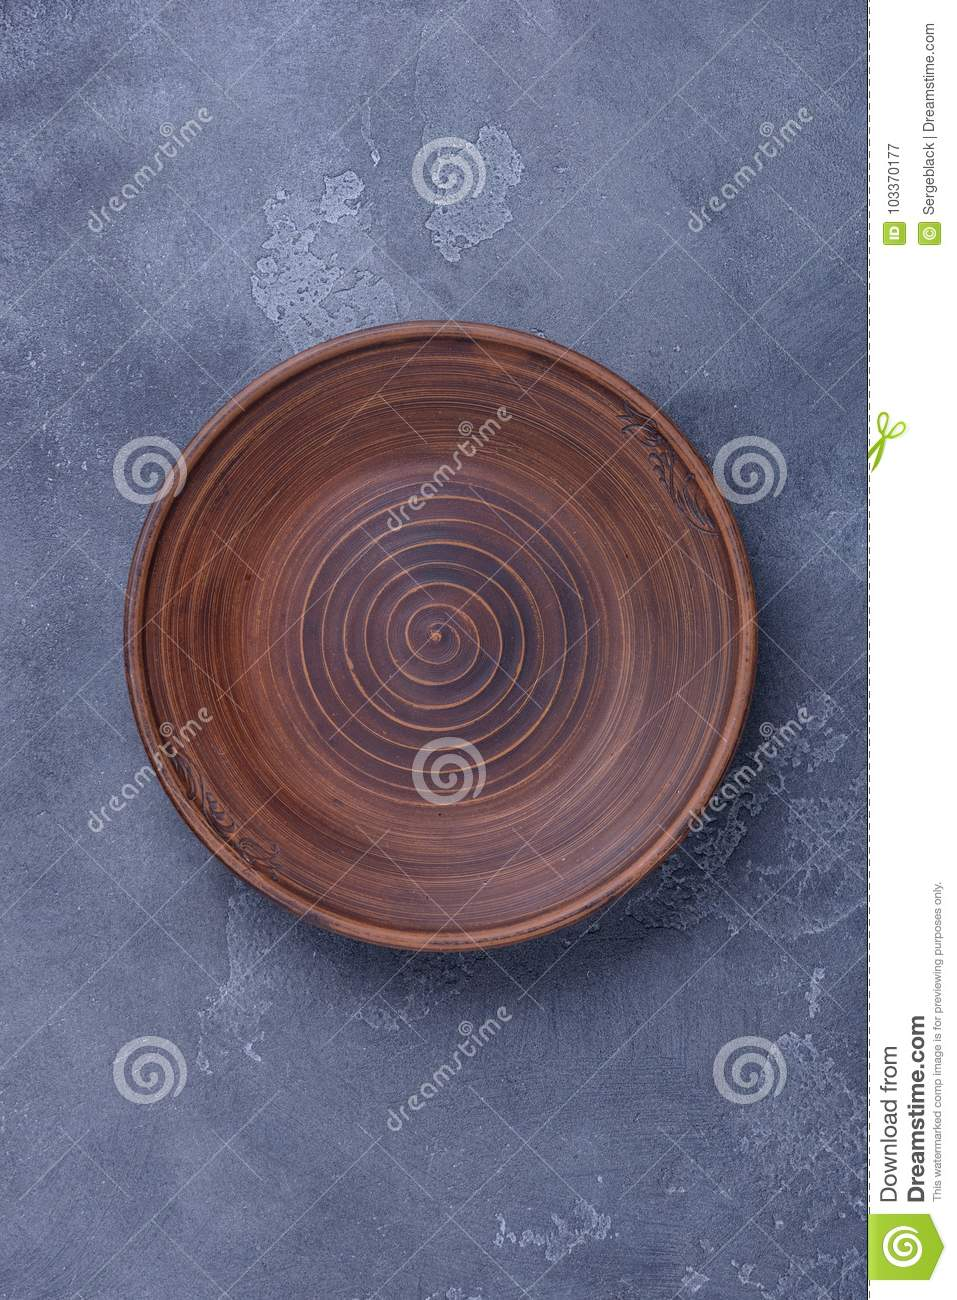 empty plate on dark background stock image image of rough view